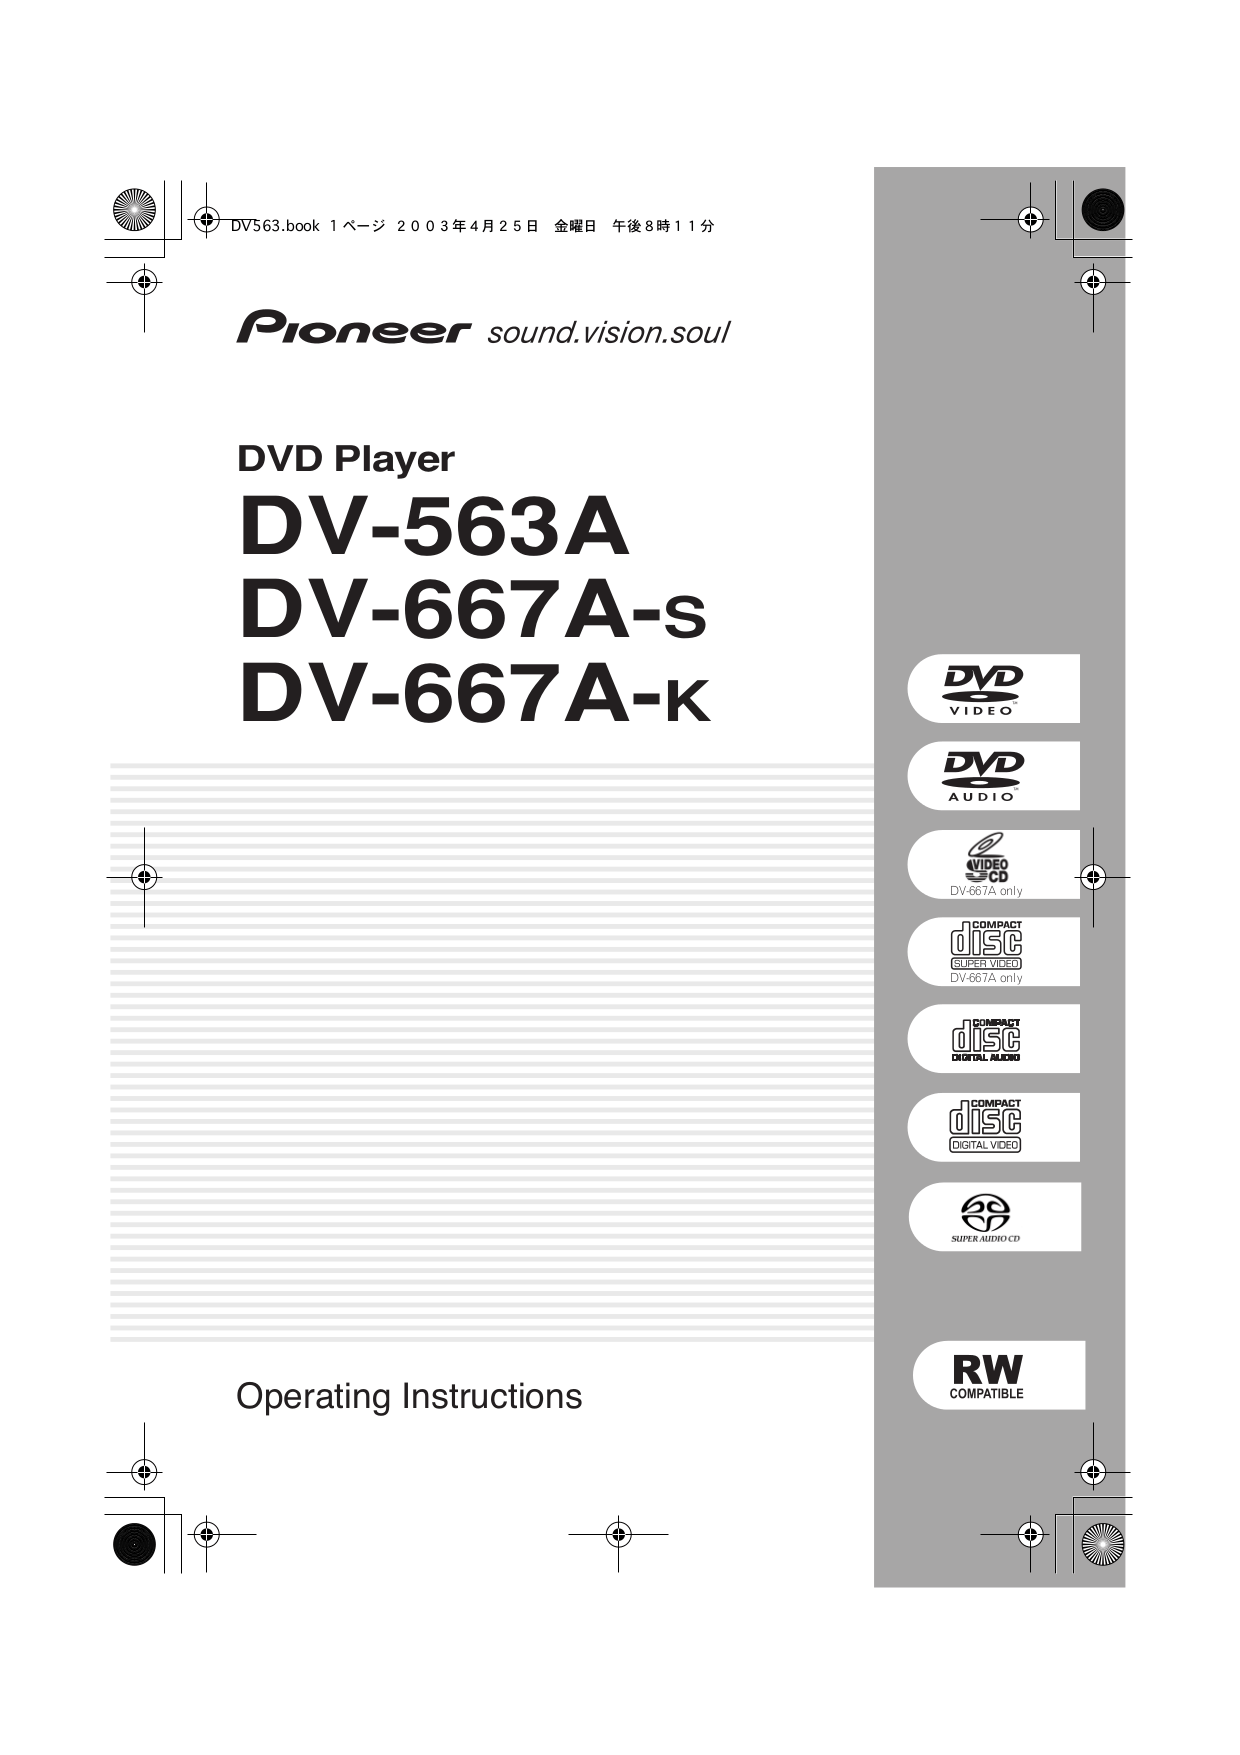 Download free pdf for Pioneer DV-563A DVD Players manual